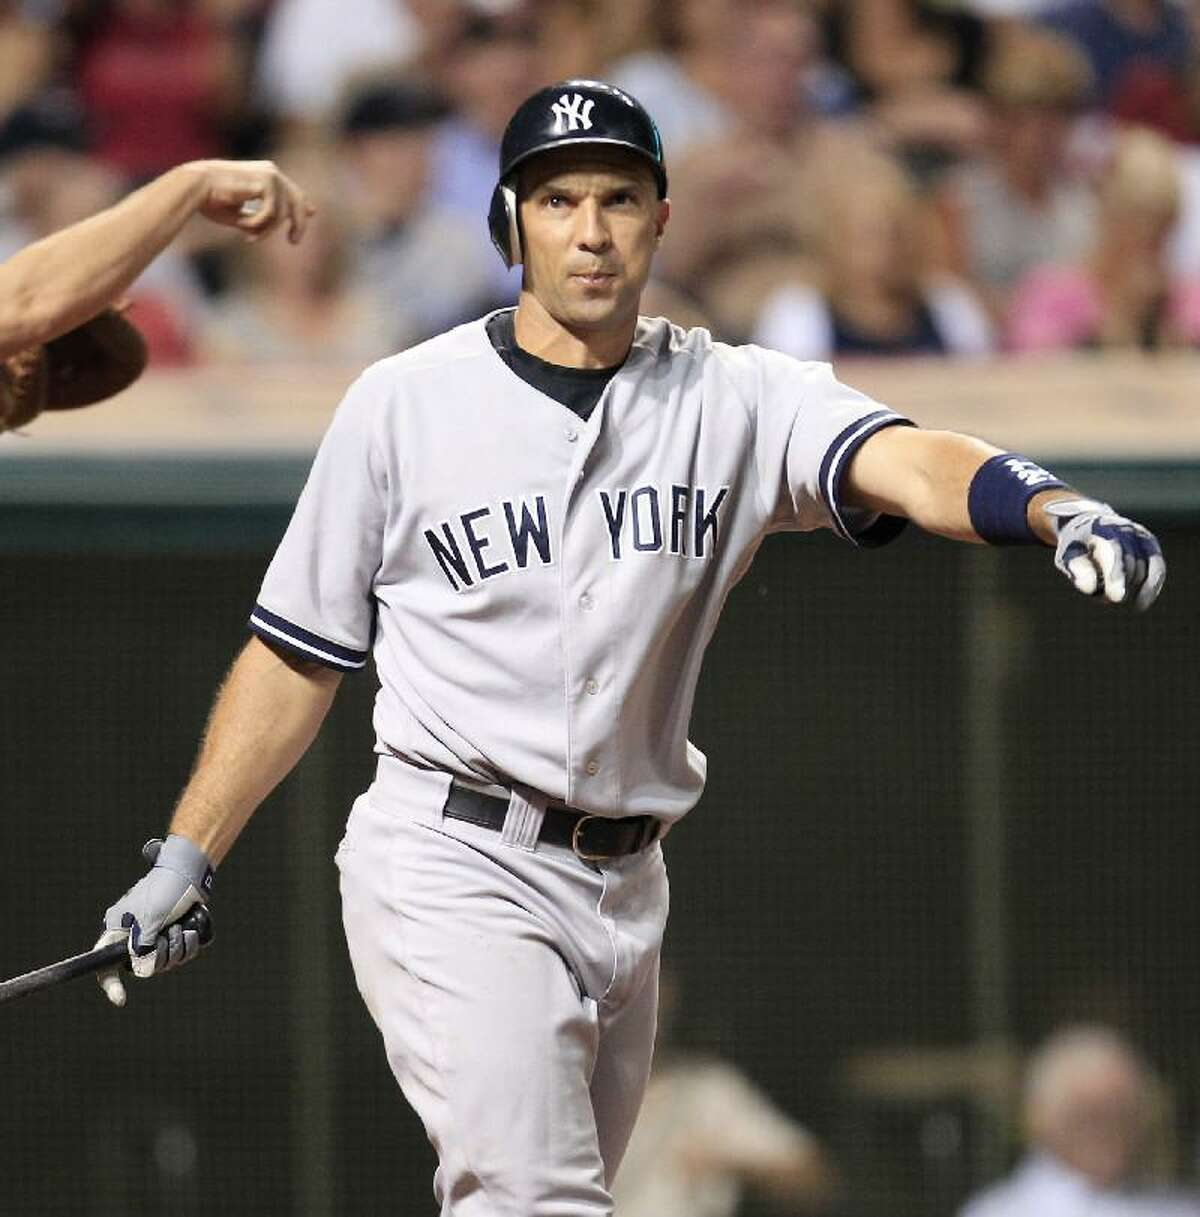 ASSOCIATED PRESS New York Yankees' Raul Ibanez reacts after striking out against Cleveland Indians relief pitcher Chris Perez in the ninth inning of Saturday night's game in Cleveland. The Yankees lost 3-1.